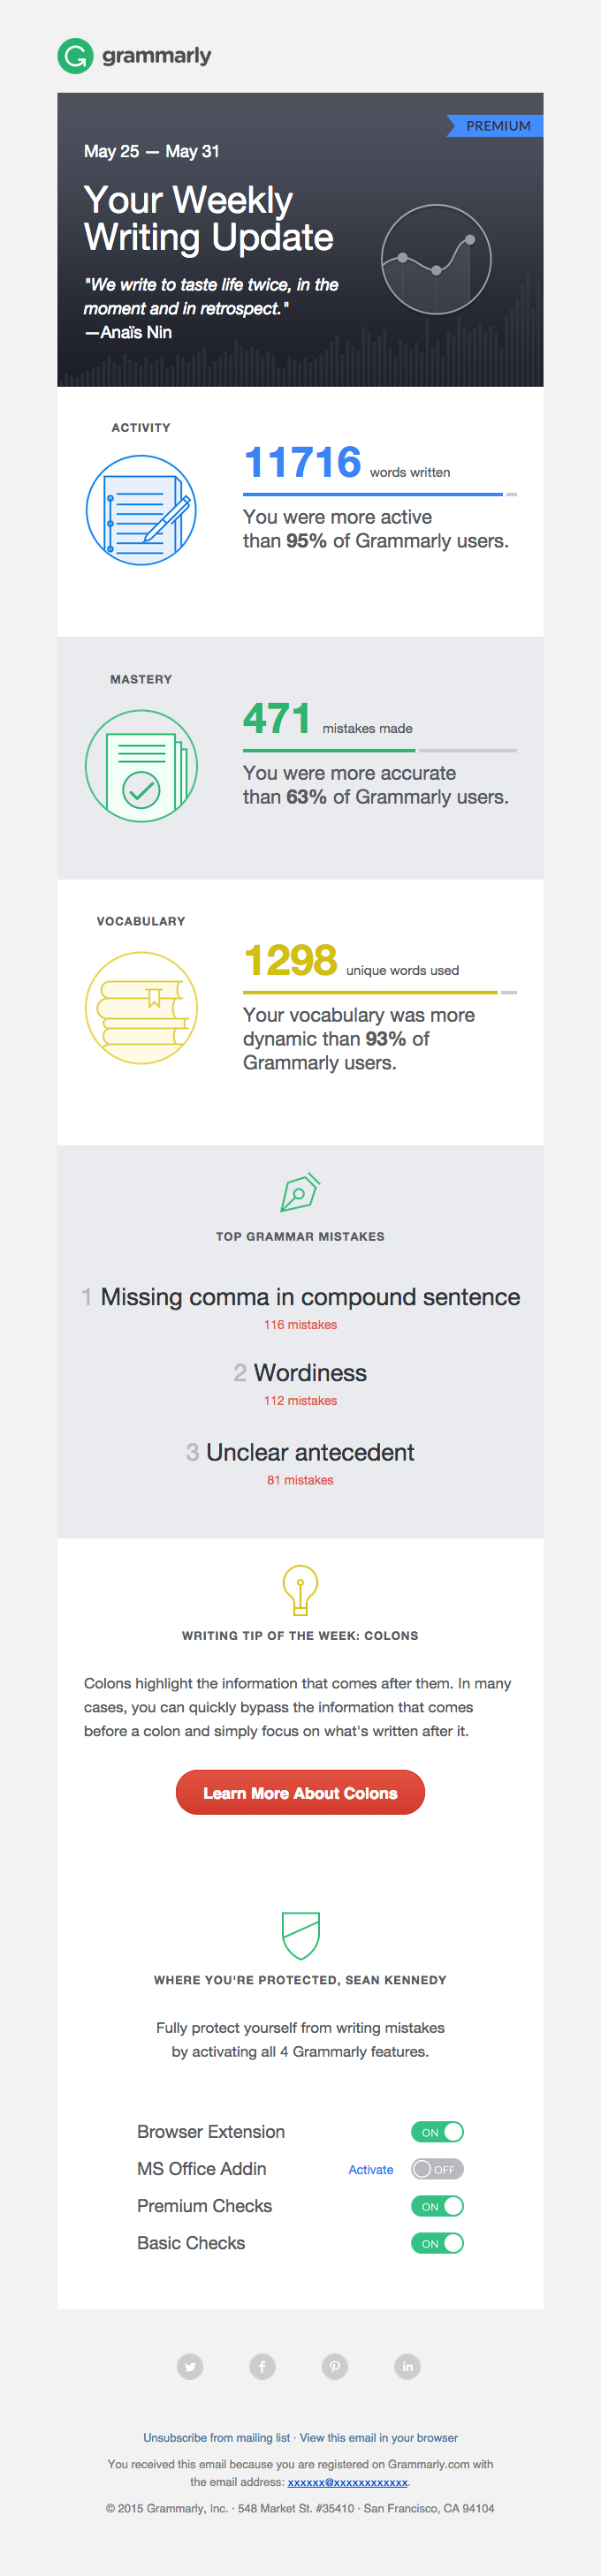 grammarly-weekly-21